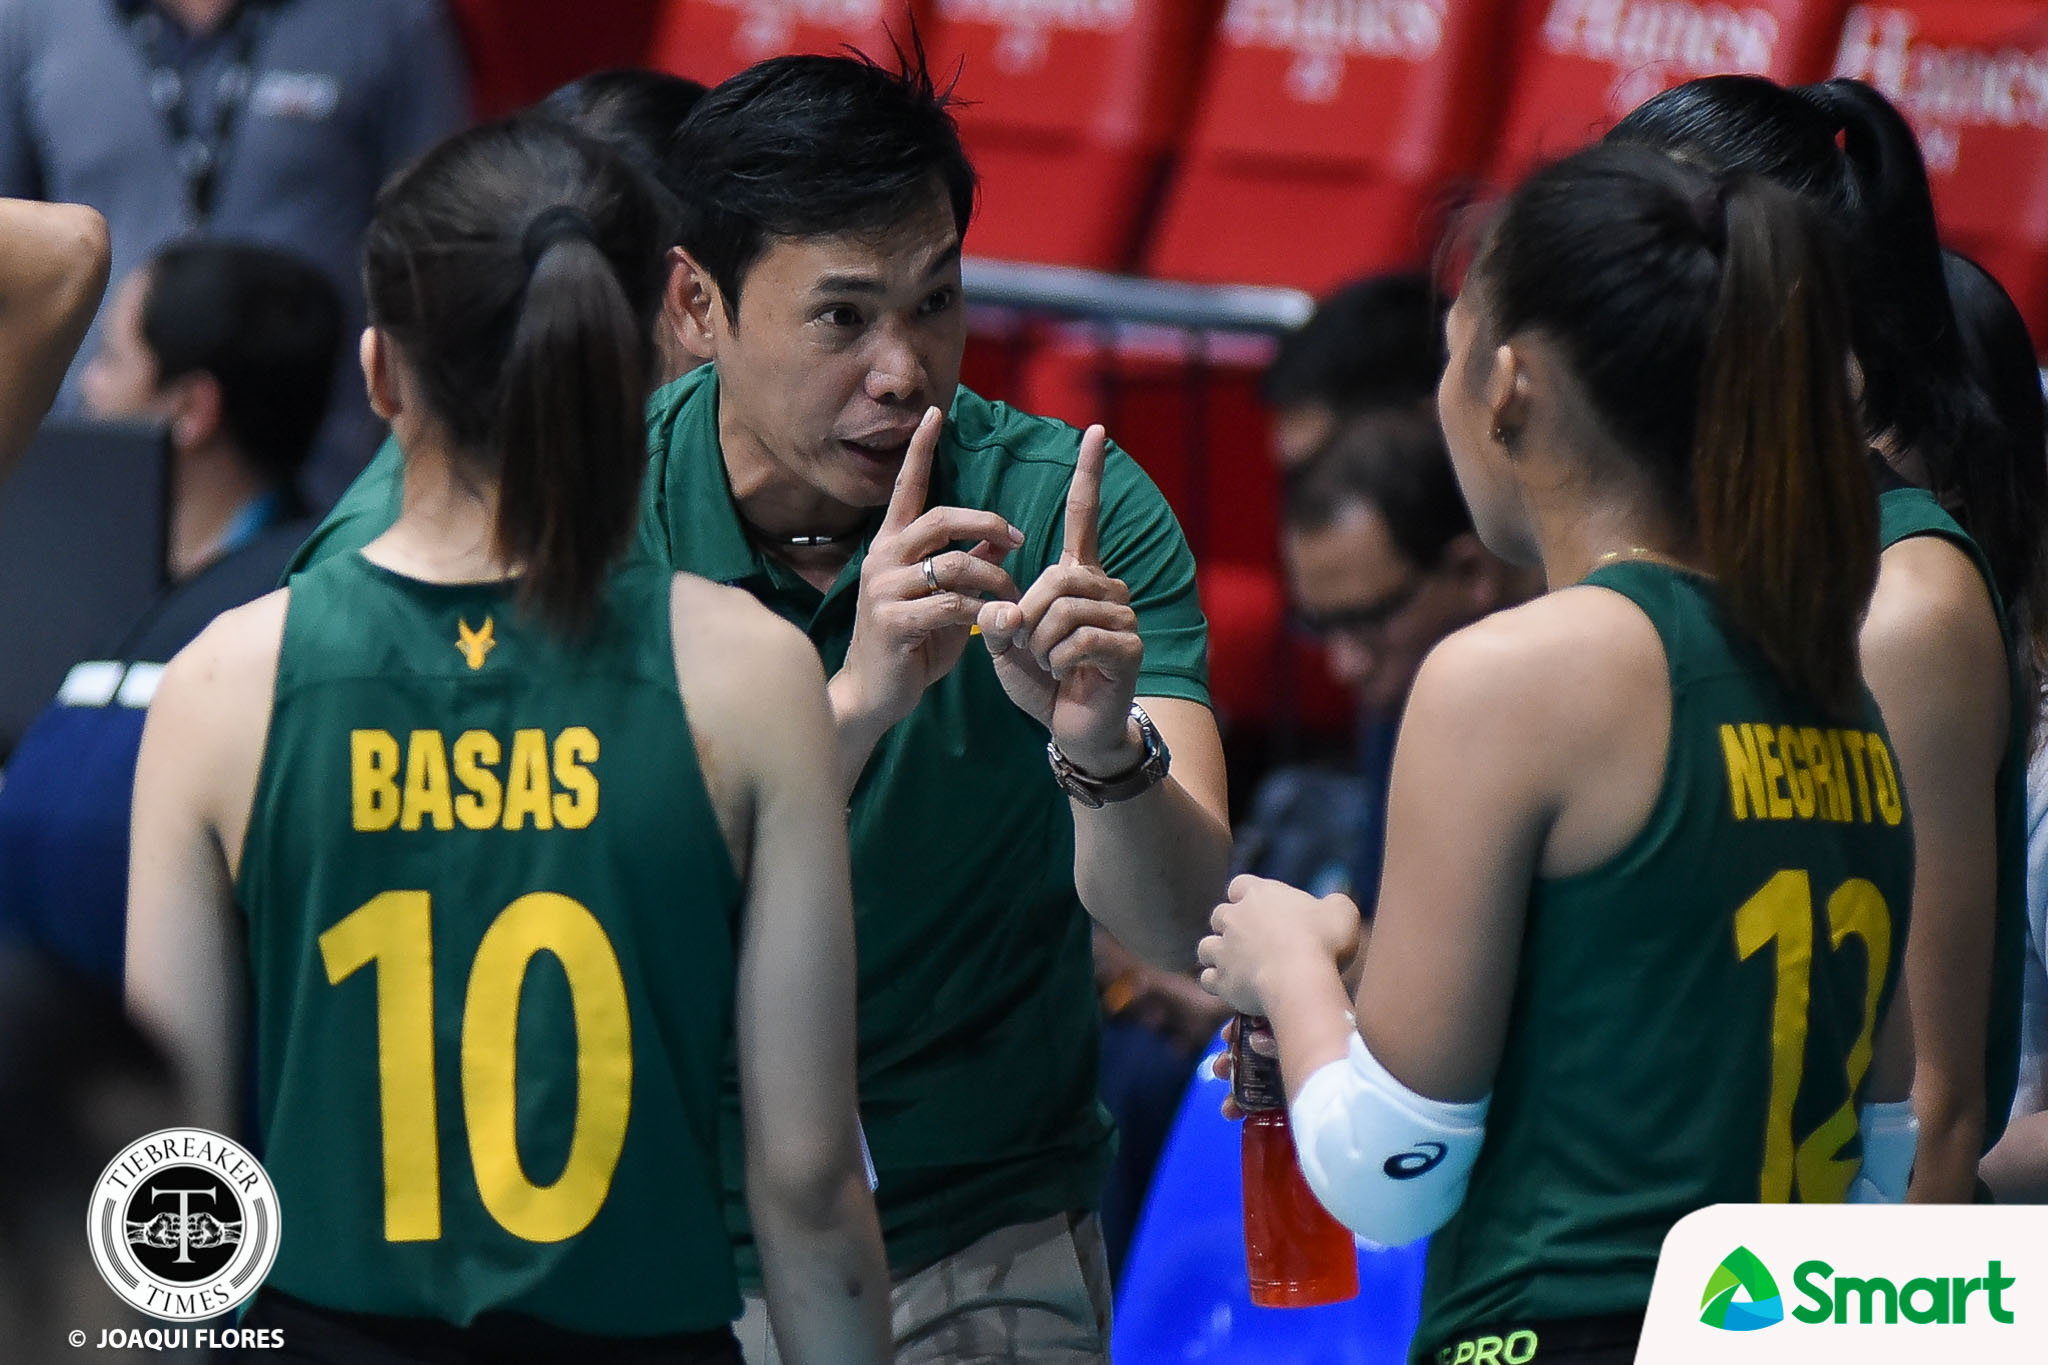 Tiebreaker Times George Pascua on seemingly choking himself: 'Out of nowhere yun' FEU News UAAP Volleyball  UAAP Season 80 Women's Volleyball UAAP Season 80 Philippine Sports News George Pascua FEU Women's Volleyball Bernadeth Pons